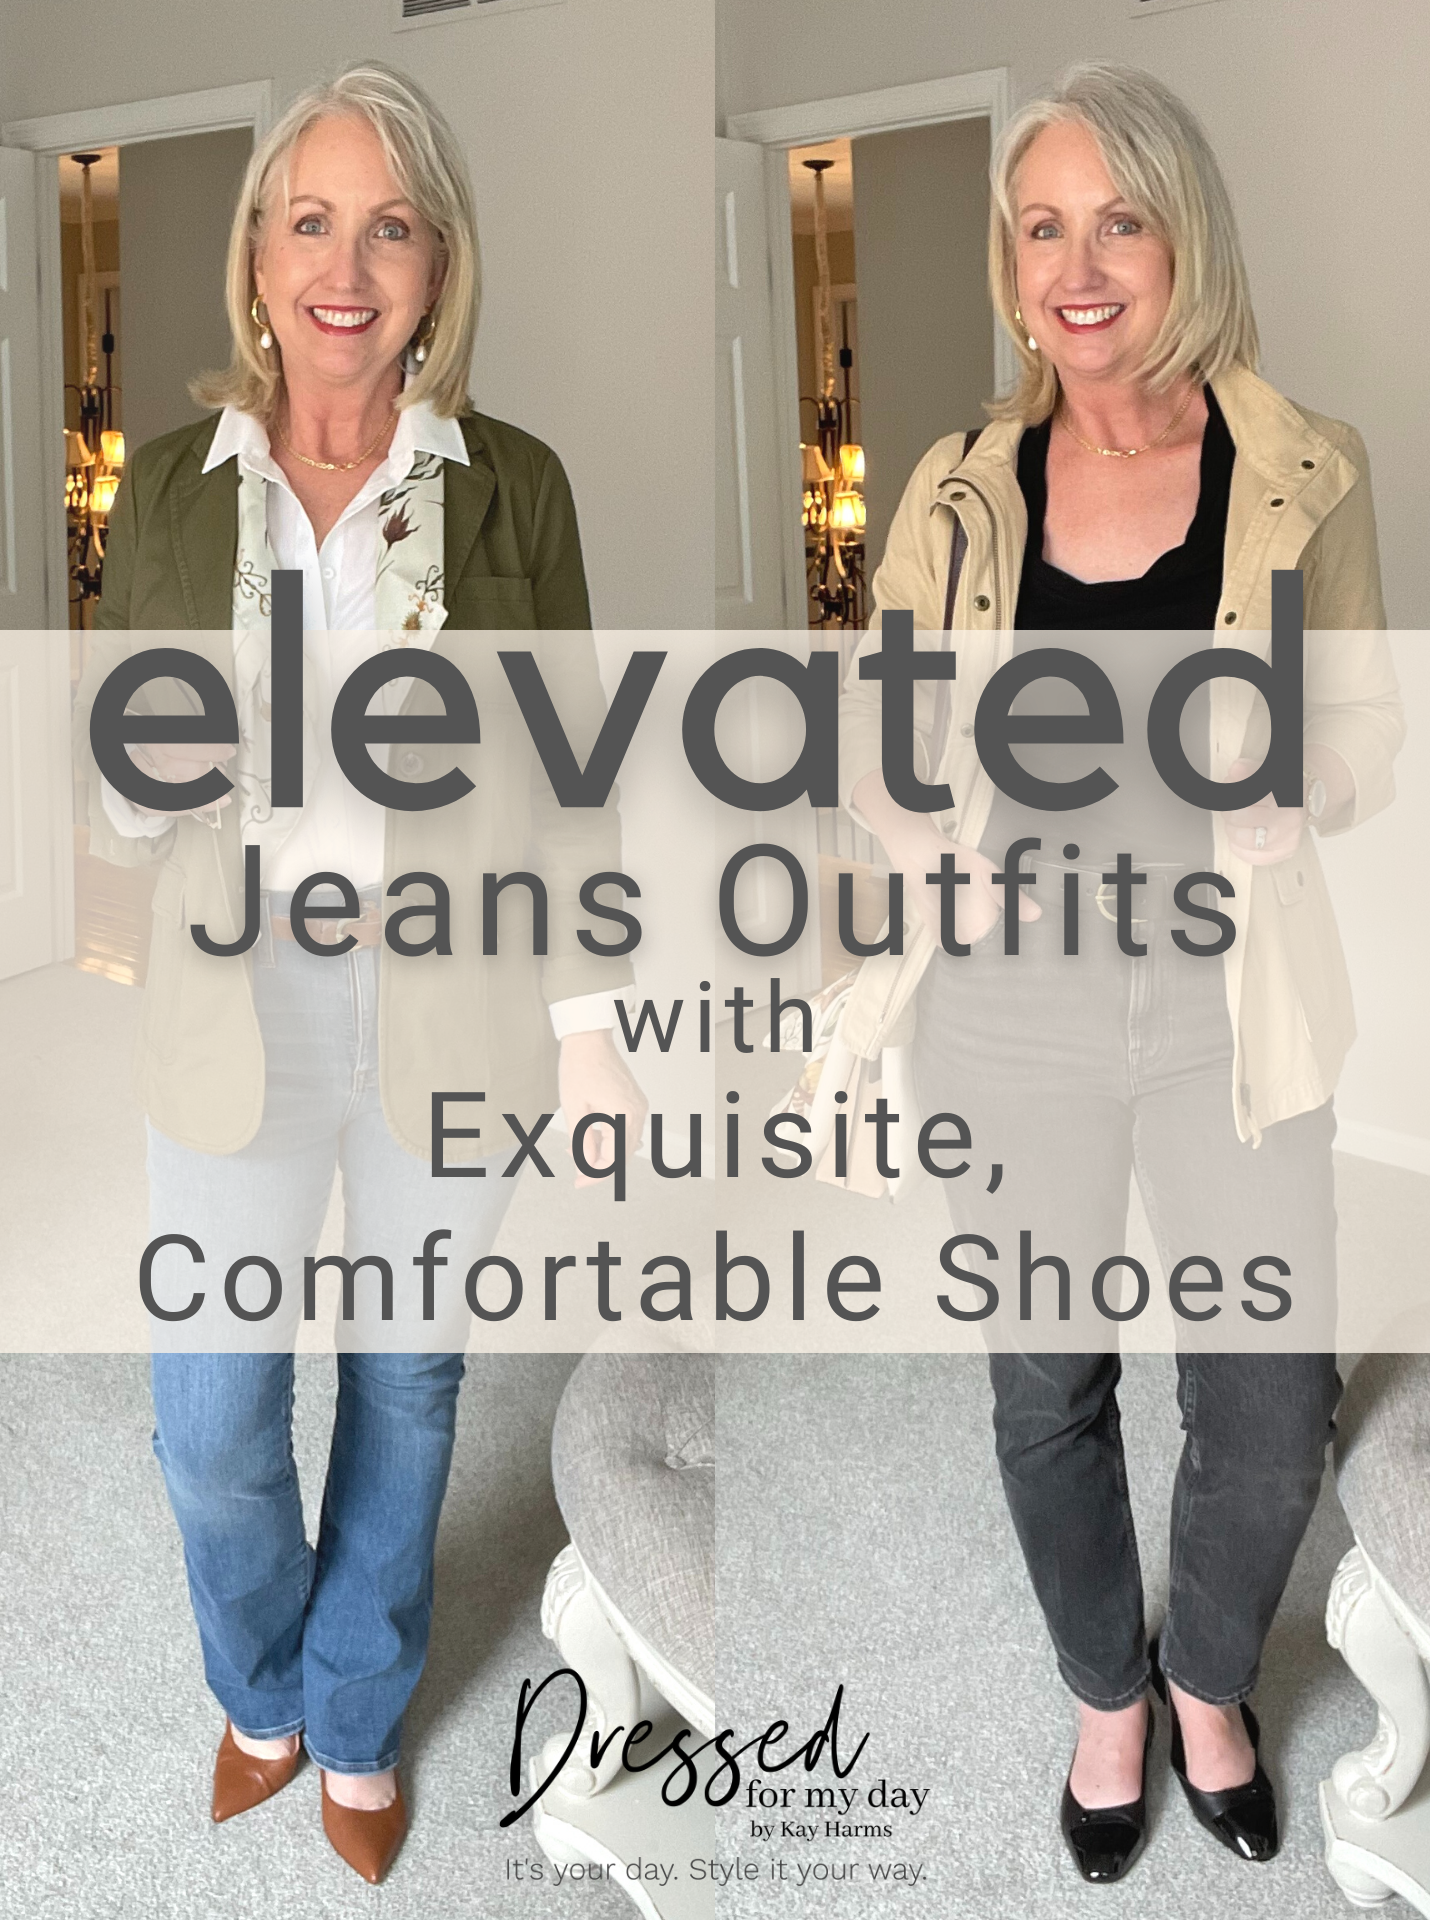 Elevated Jeans Outfits with Exquisite Comfortable Shoes